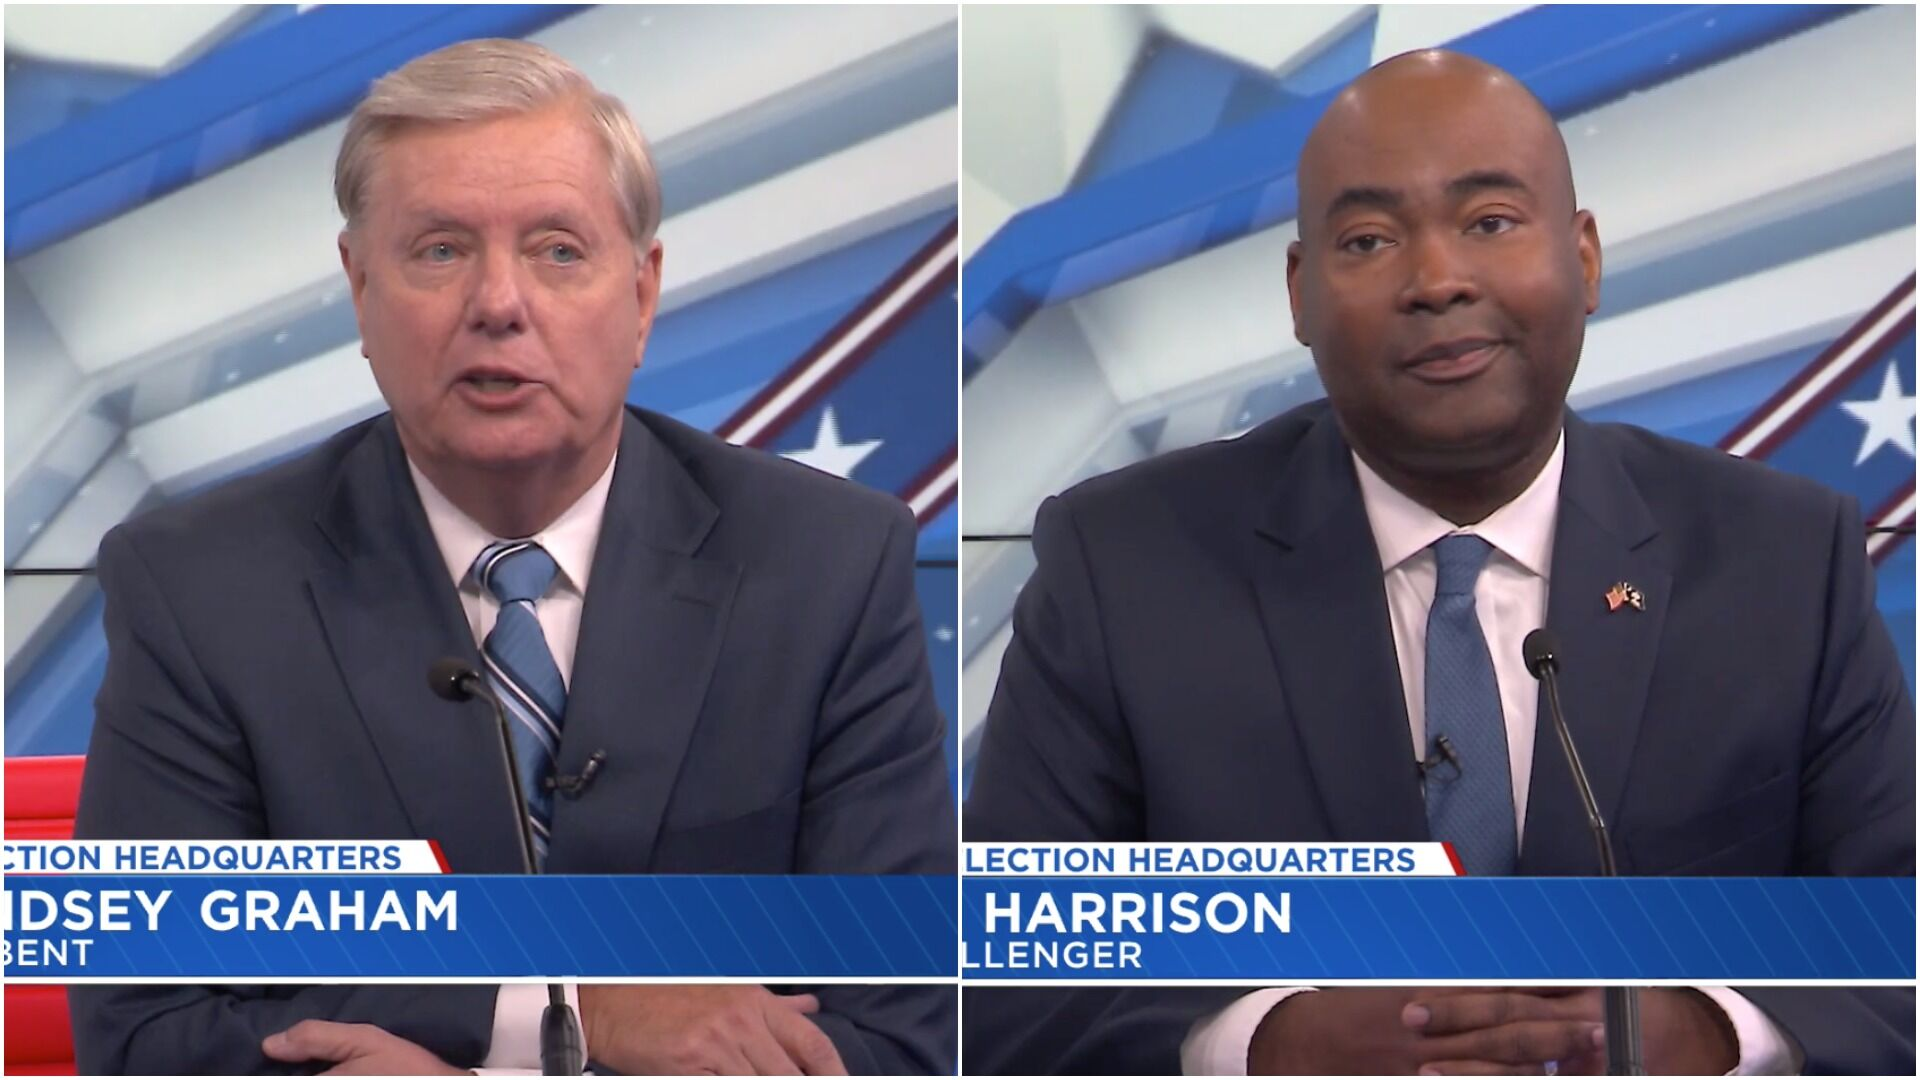 SC Senate debate replaced by separate interviews after Harrison insisted on COVID tests   Palmetto Politics   postandcourier.com 2